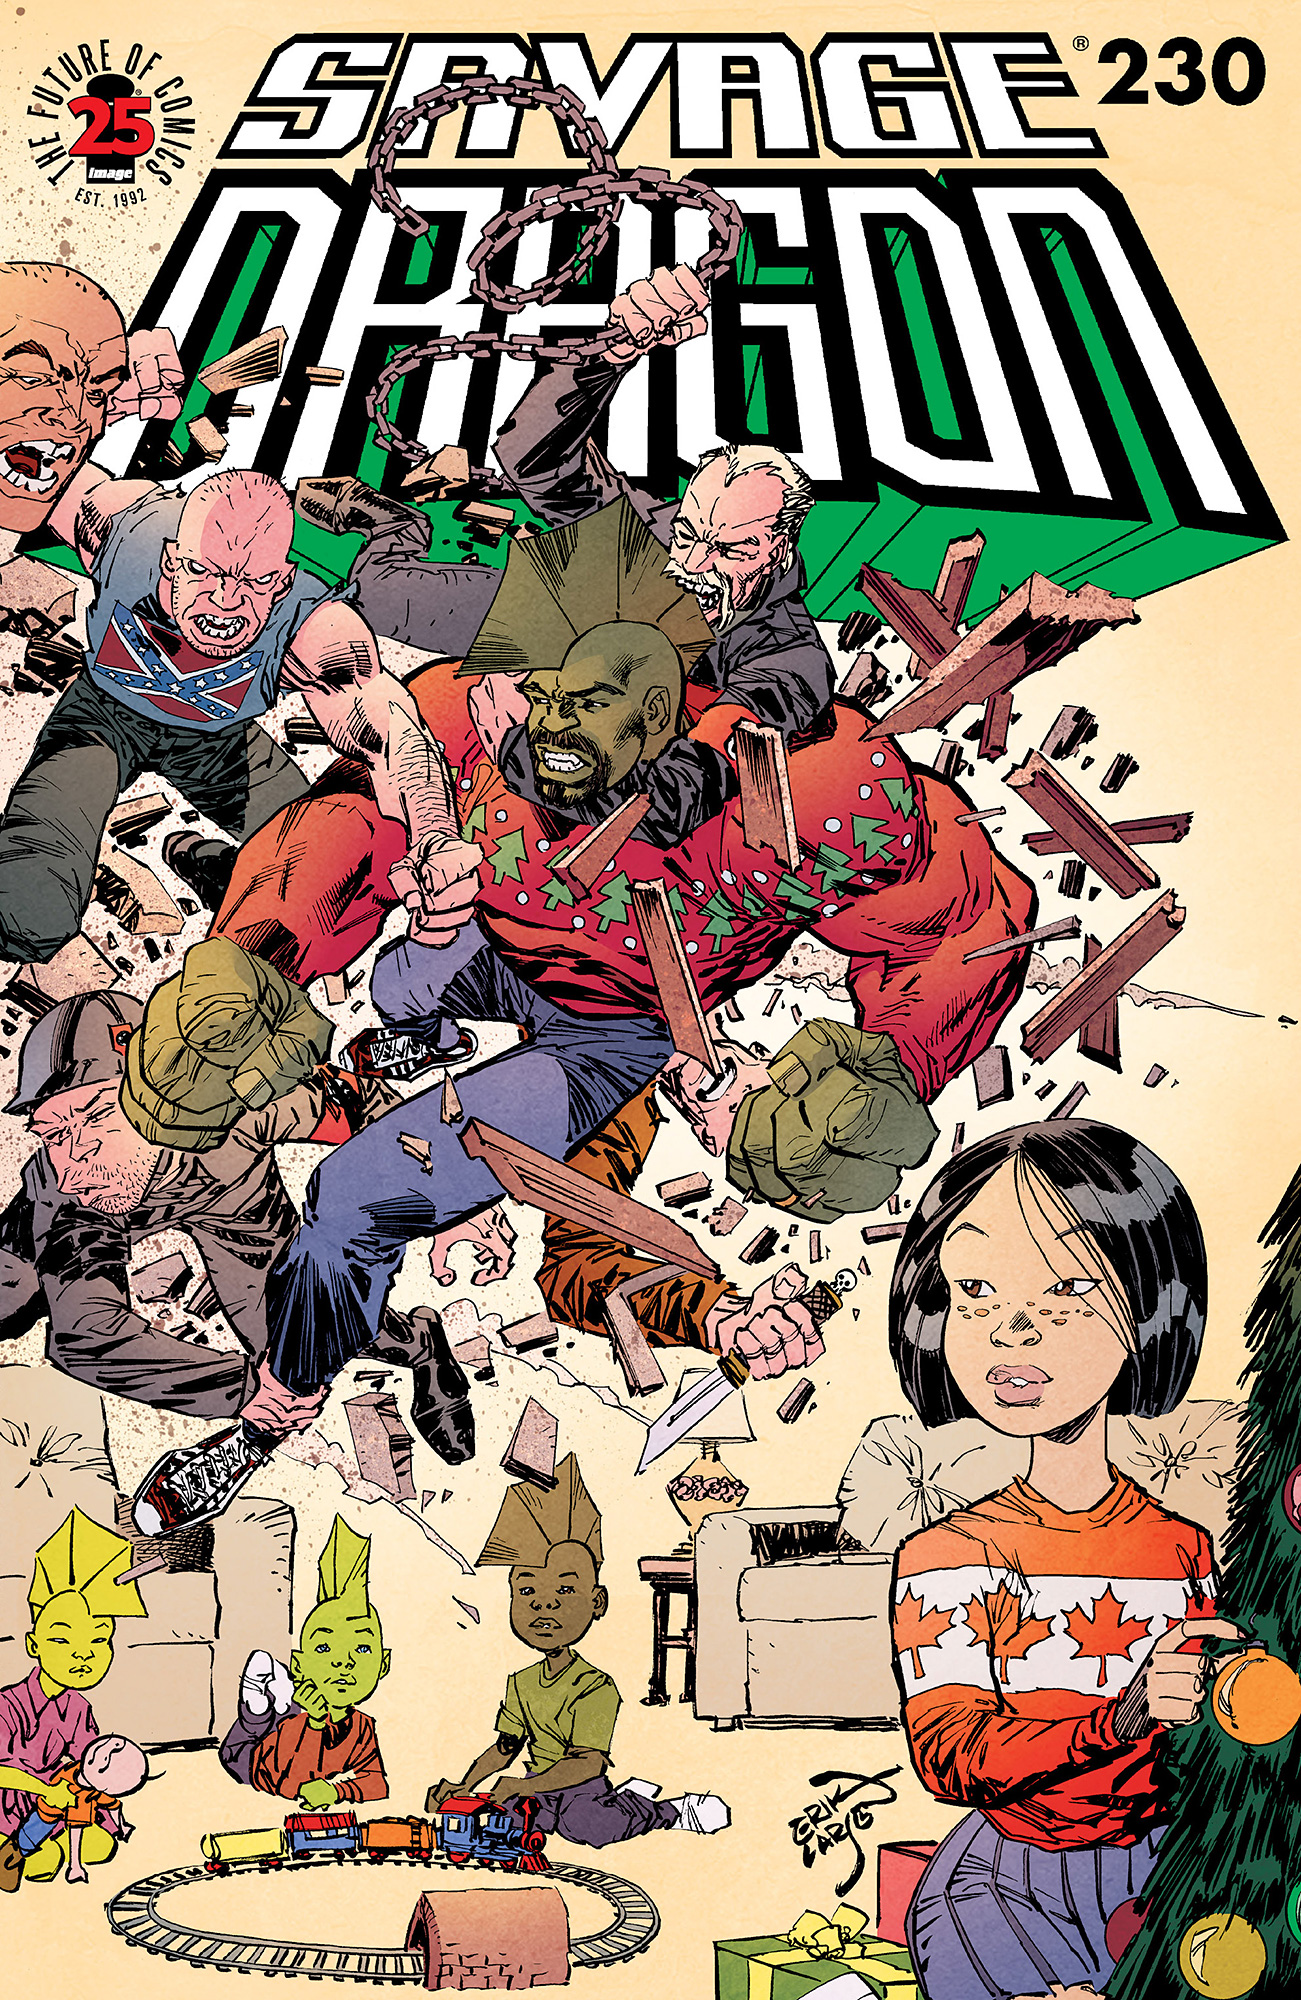 Cover Savage Dragon Vol.2 #230